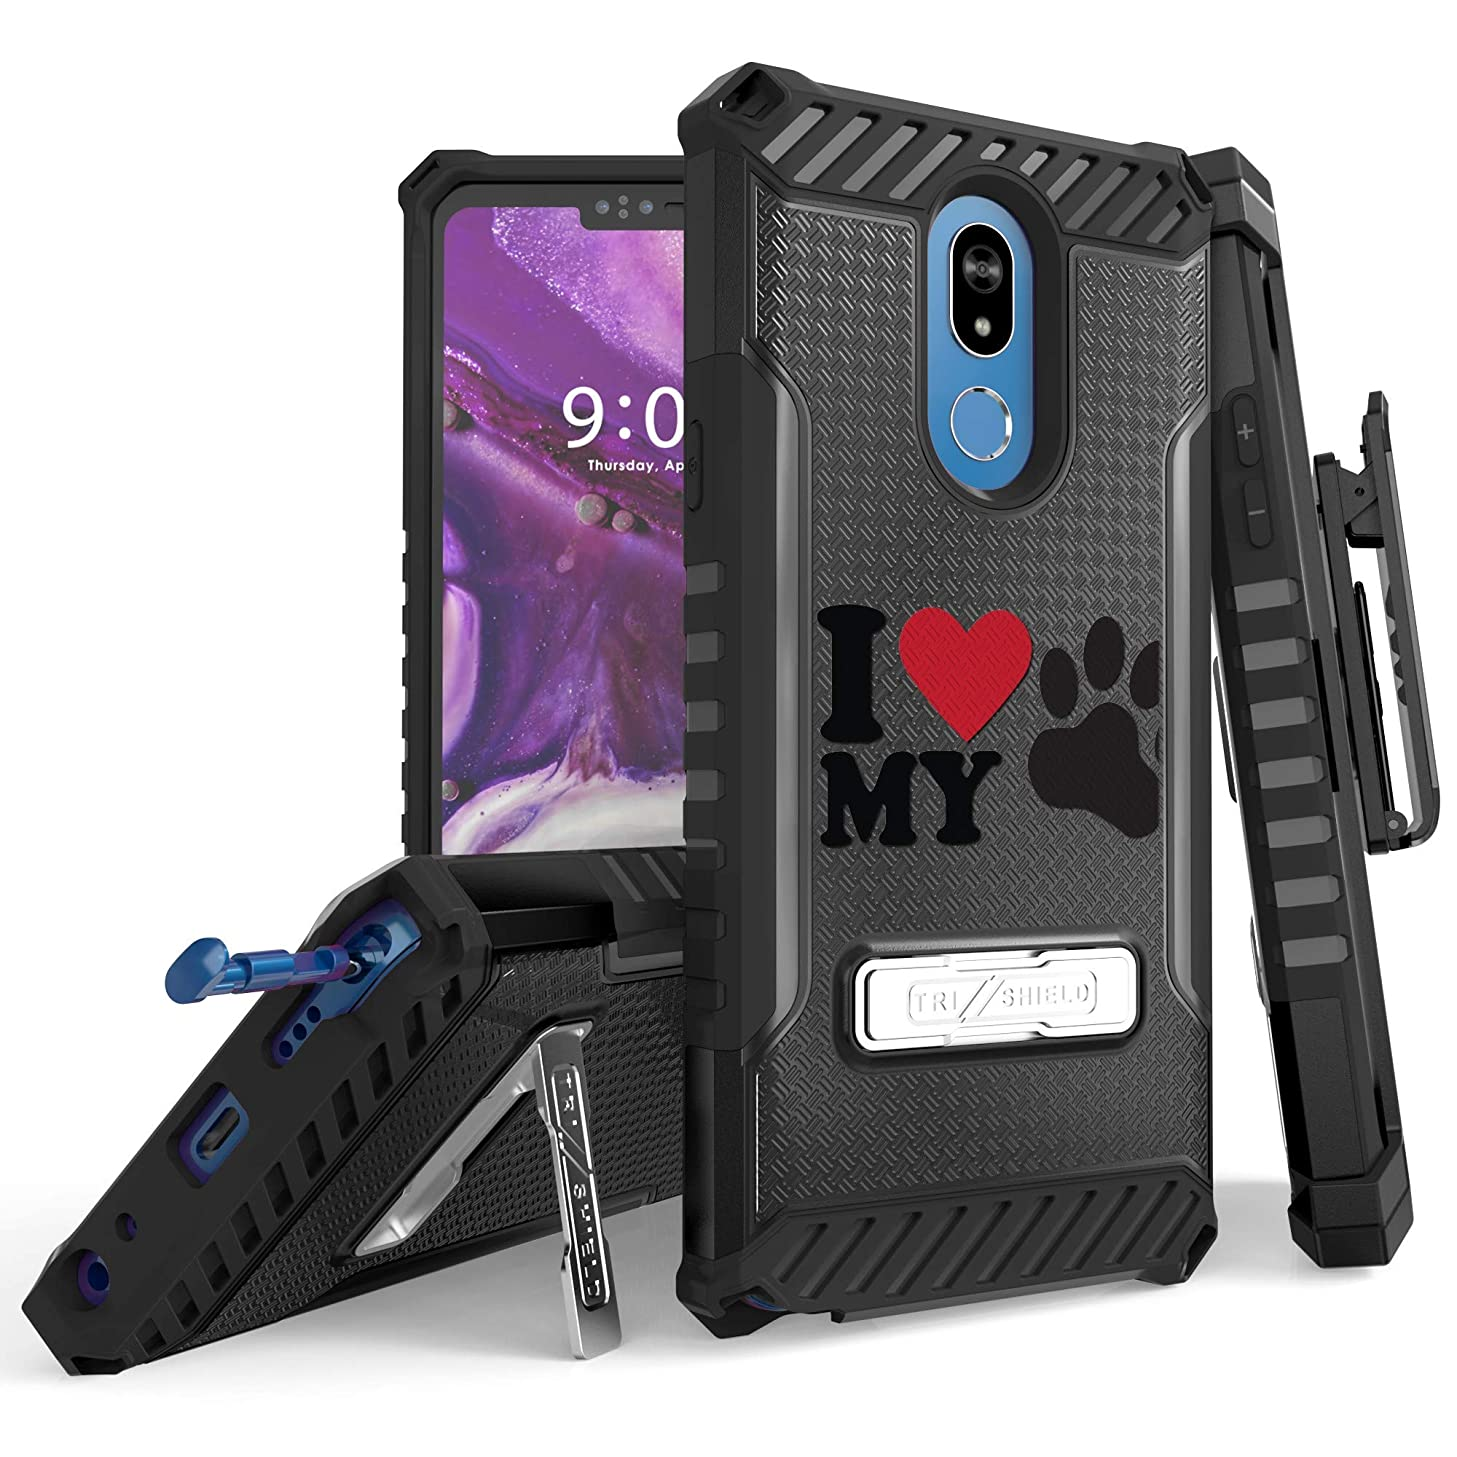 Trishield Series for Stylo 5 Case, Military Grade Rugged Cover + [Metal Kickstand]+[Belt Clip Holster] for LG Stylo 5 (2019)- LOVEMYDOG